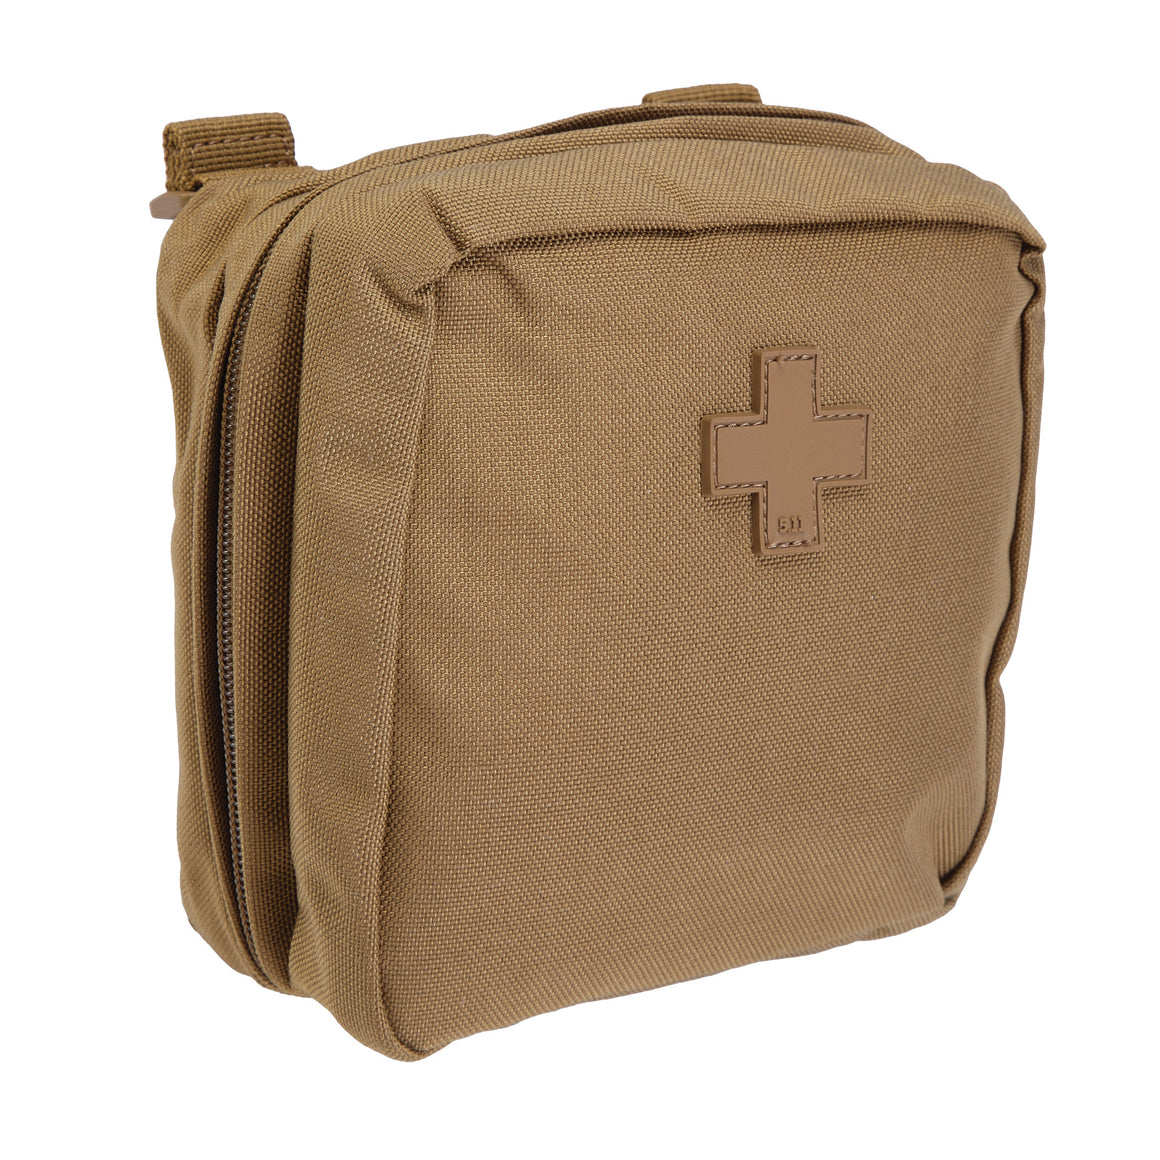 5.11 ifak pouch great 5.11 first aid molle pouch